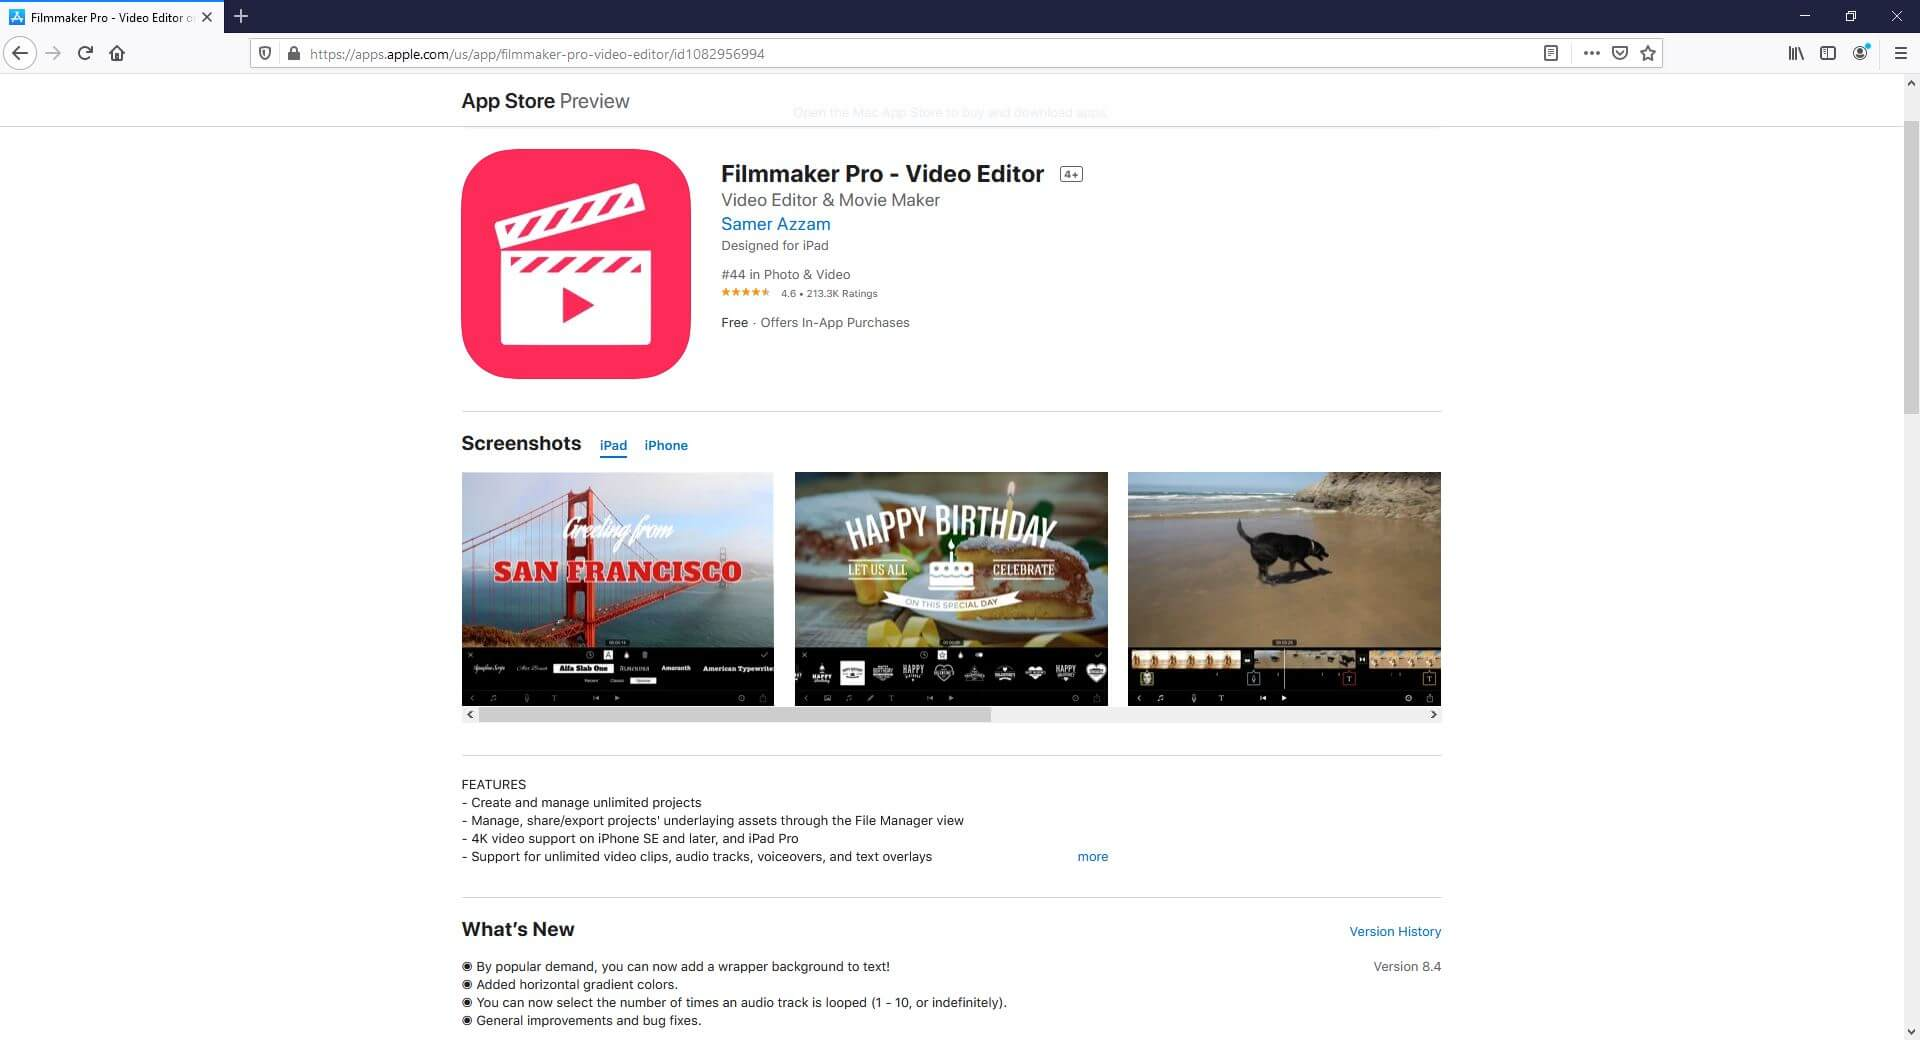 YouTube Shorts Video Editing app: Filmmaker Pro